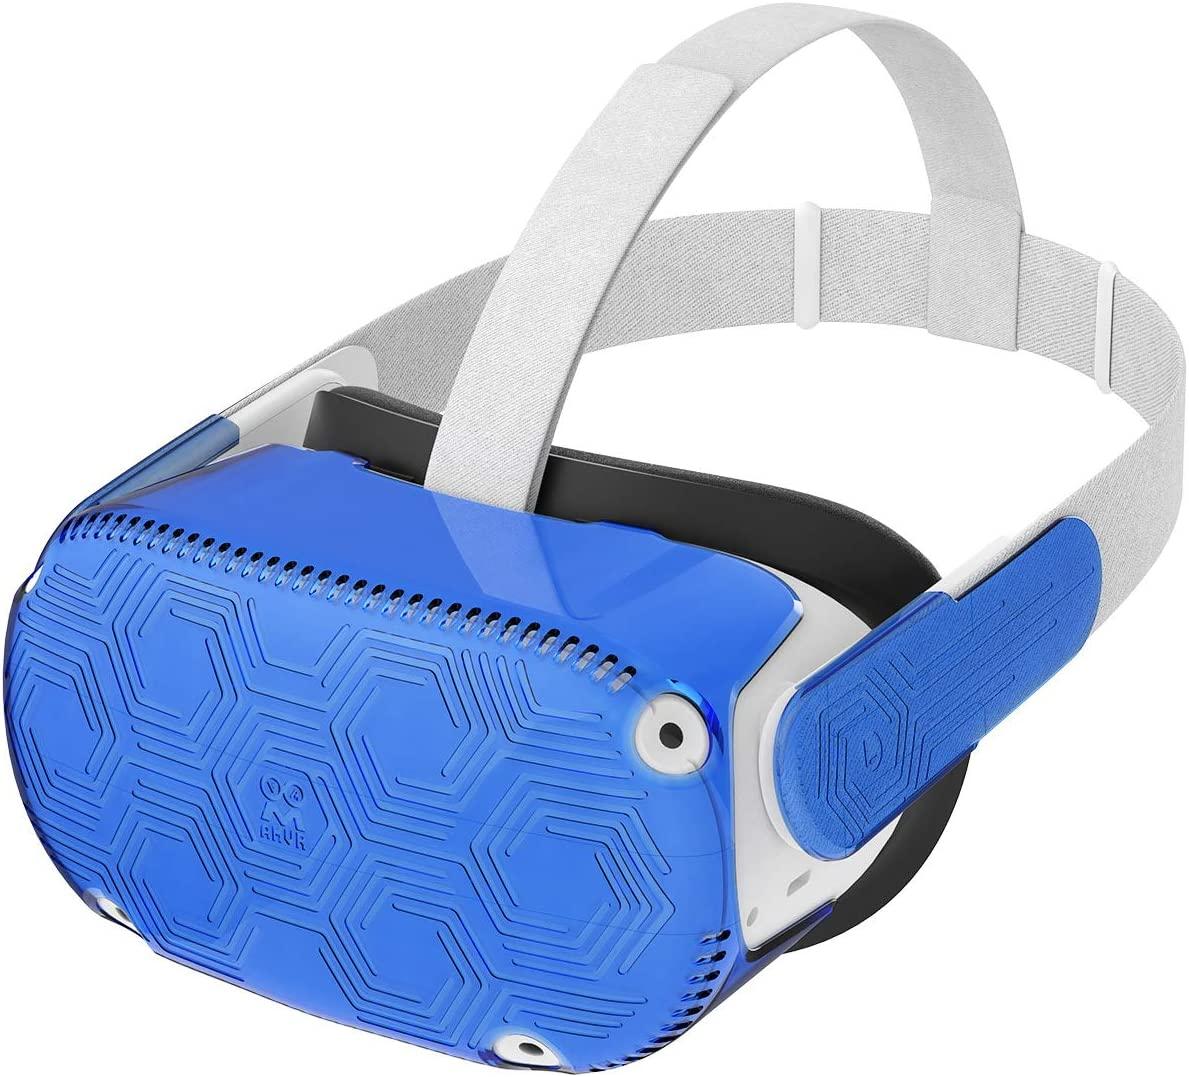 AMVR VR Headset Protective Shell, Light & Durable Front Face Cover for Oculus Quest 2 Accessories, Preventing Collisions and Scratches (Blue)